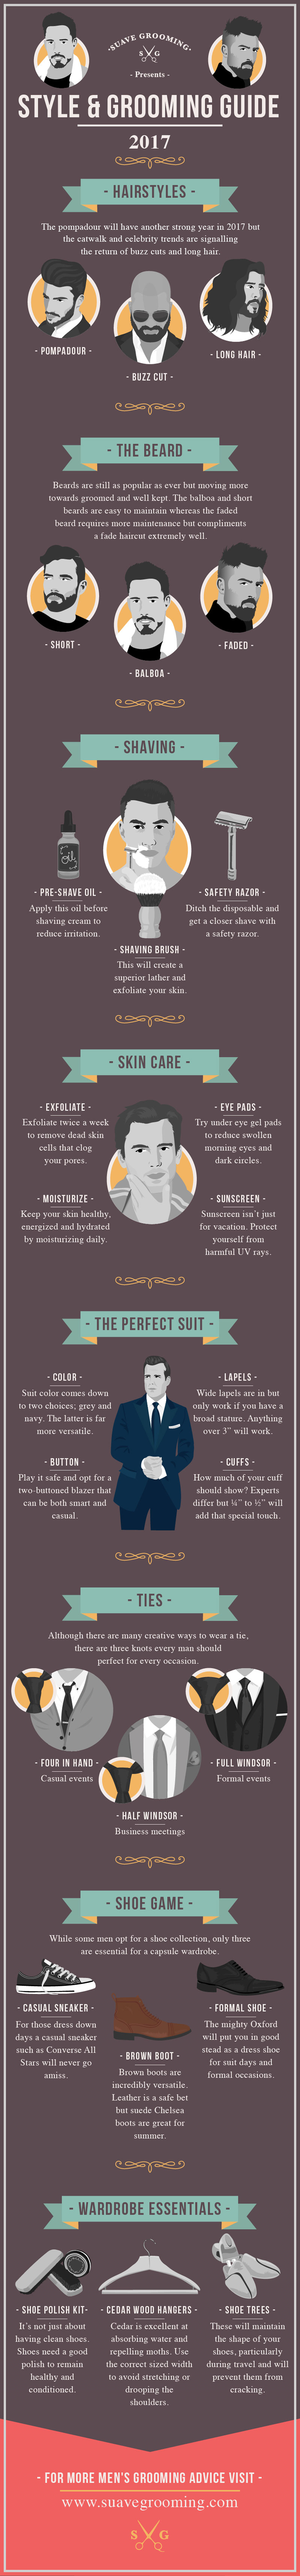 Infographic: Style & Grooming Guide 2017